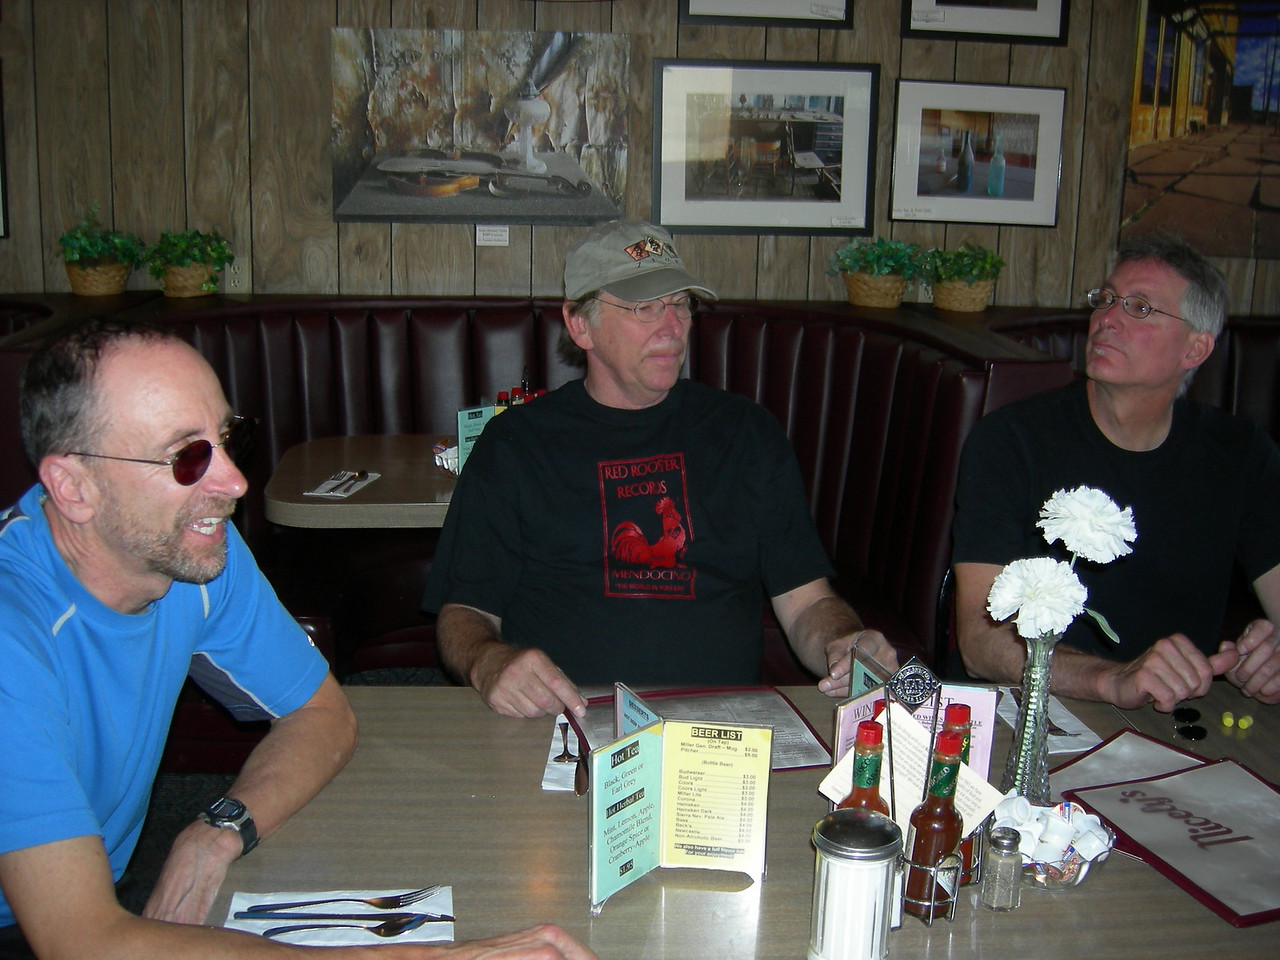 Bob, David and Mario waiting for pie at Nicely's.